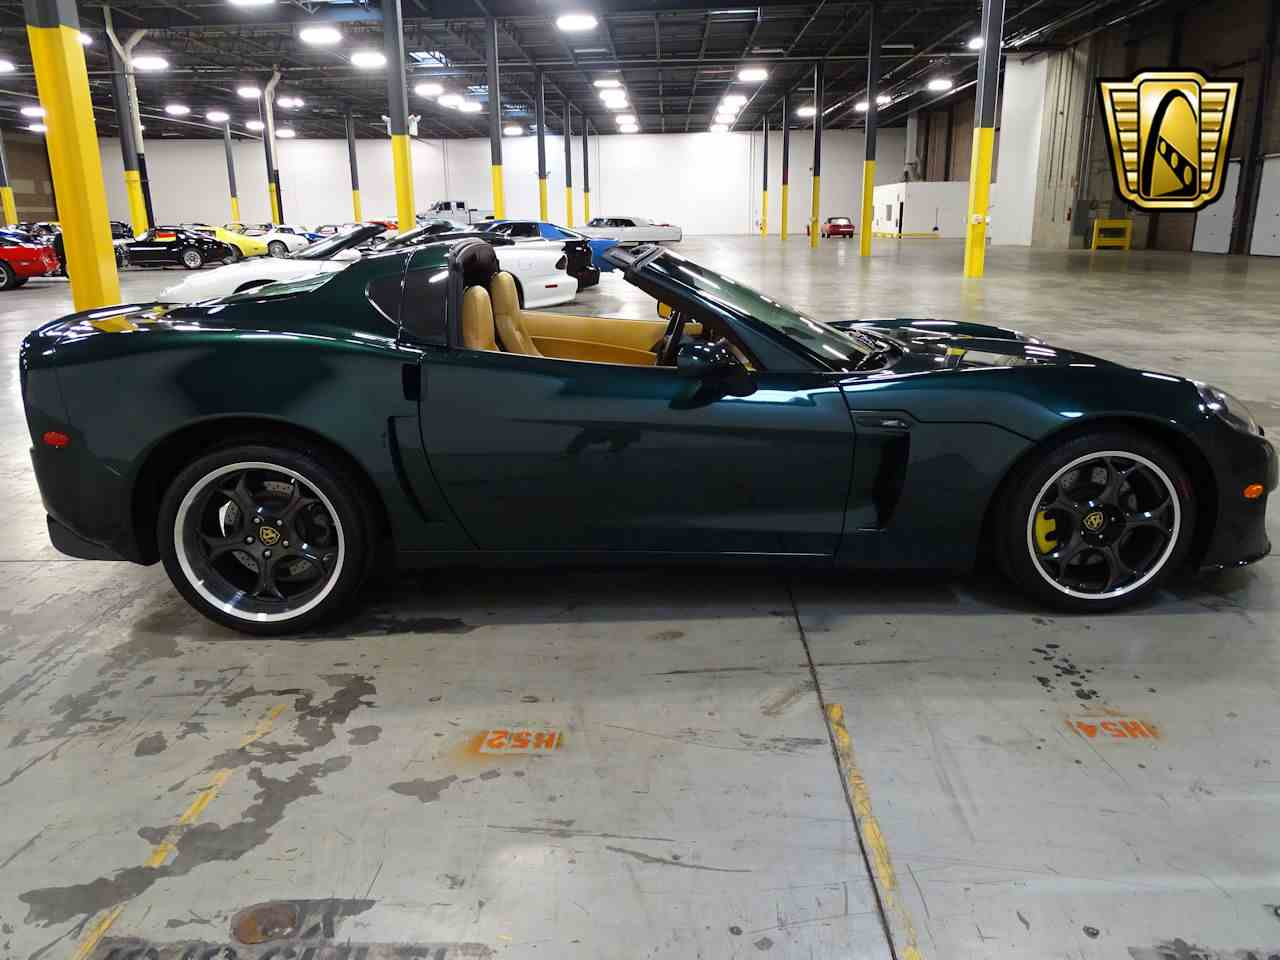 Large Picture of '09 Chevrolet Corvette - $59,000.00 Offered by Gateway Classic Cars - Philadelphia - L69W